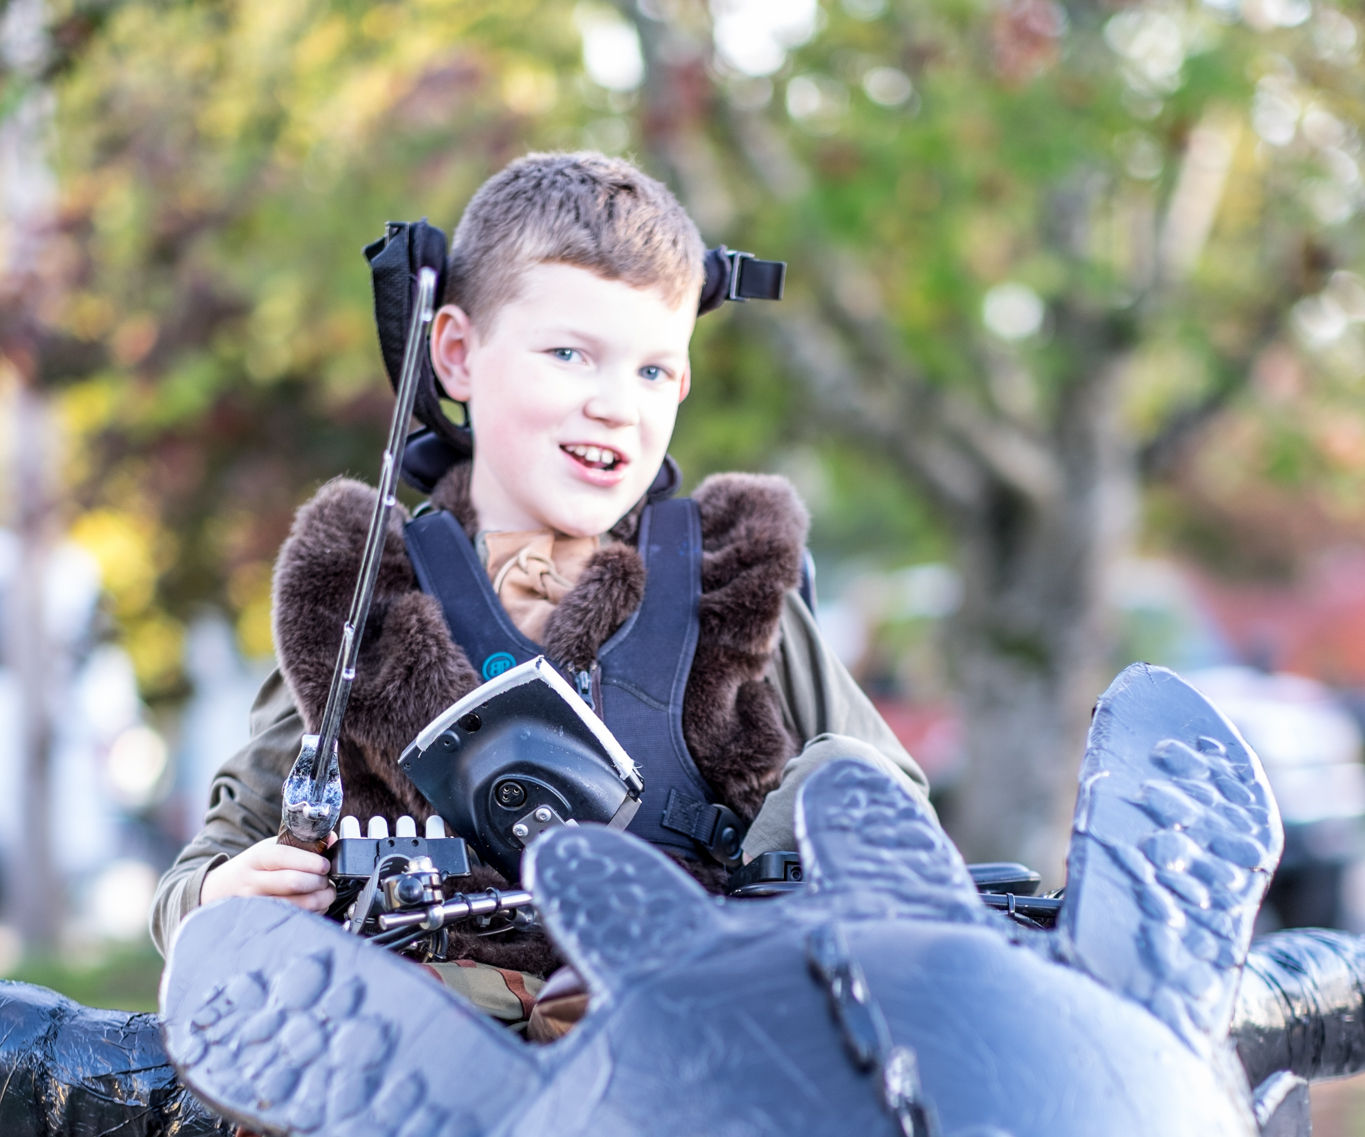 Wheelchair + Toothless = Epic Costume!